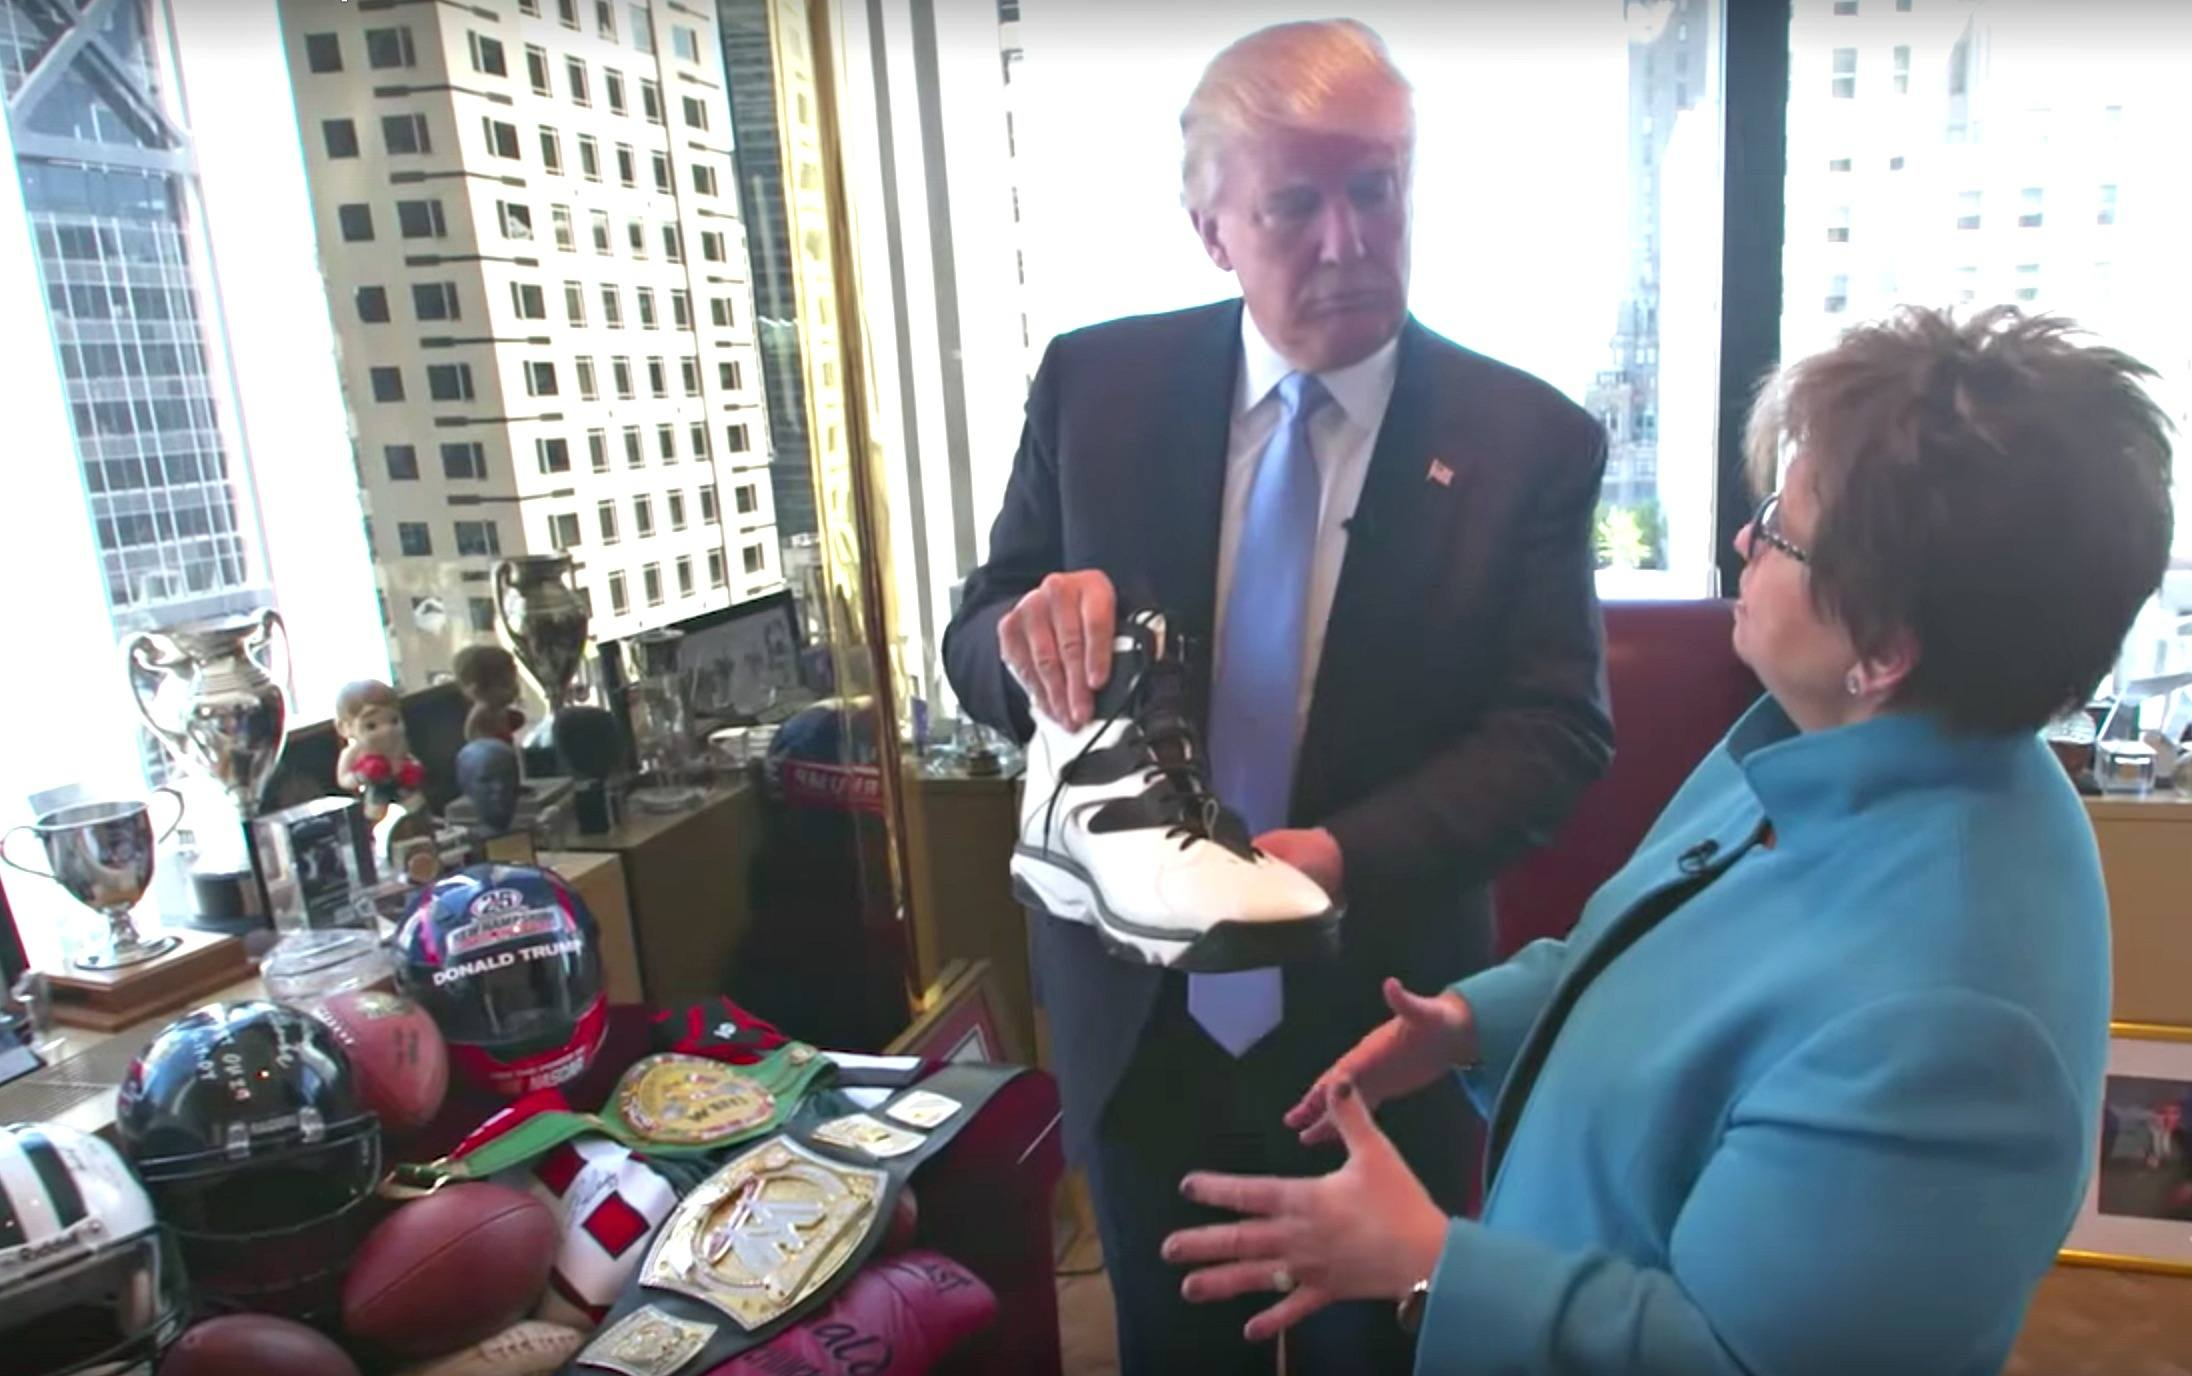 Video Go Inside Donald Trump 39 S Personal Office In Trump